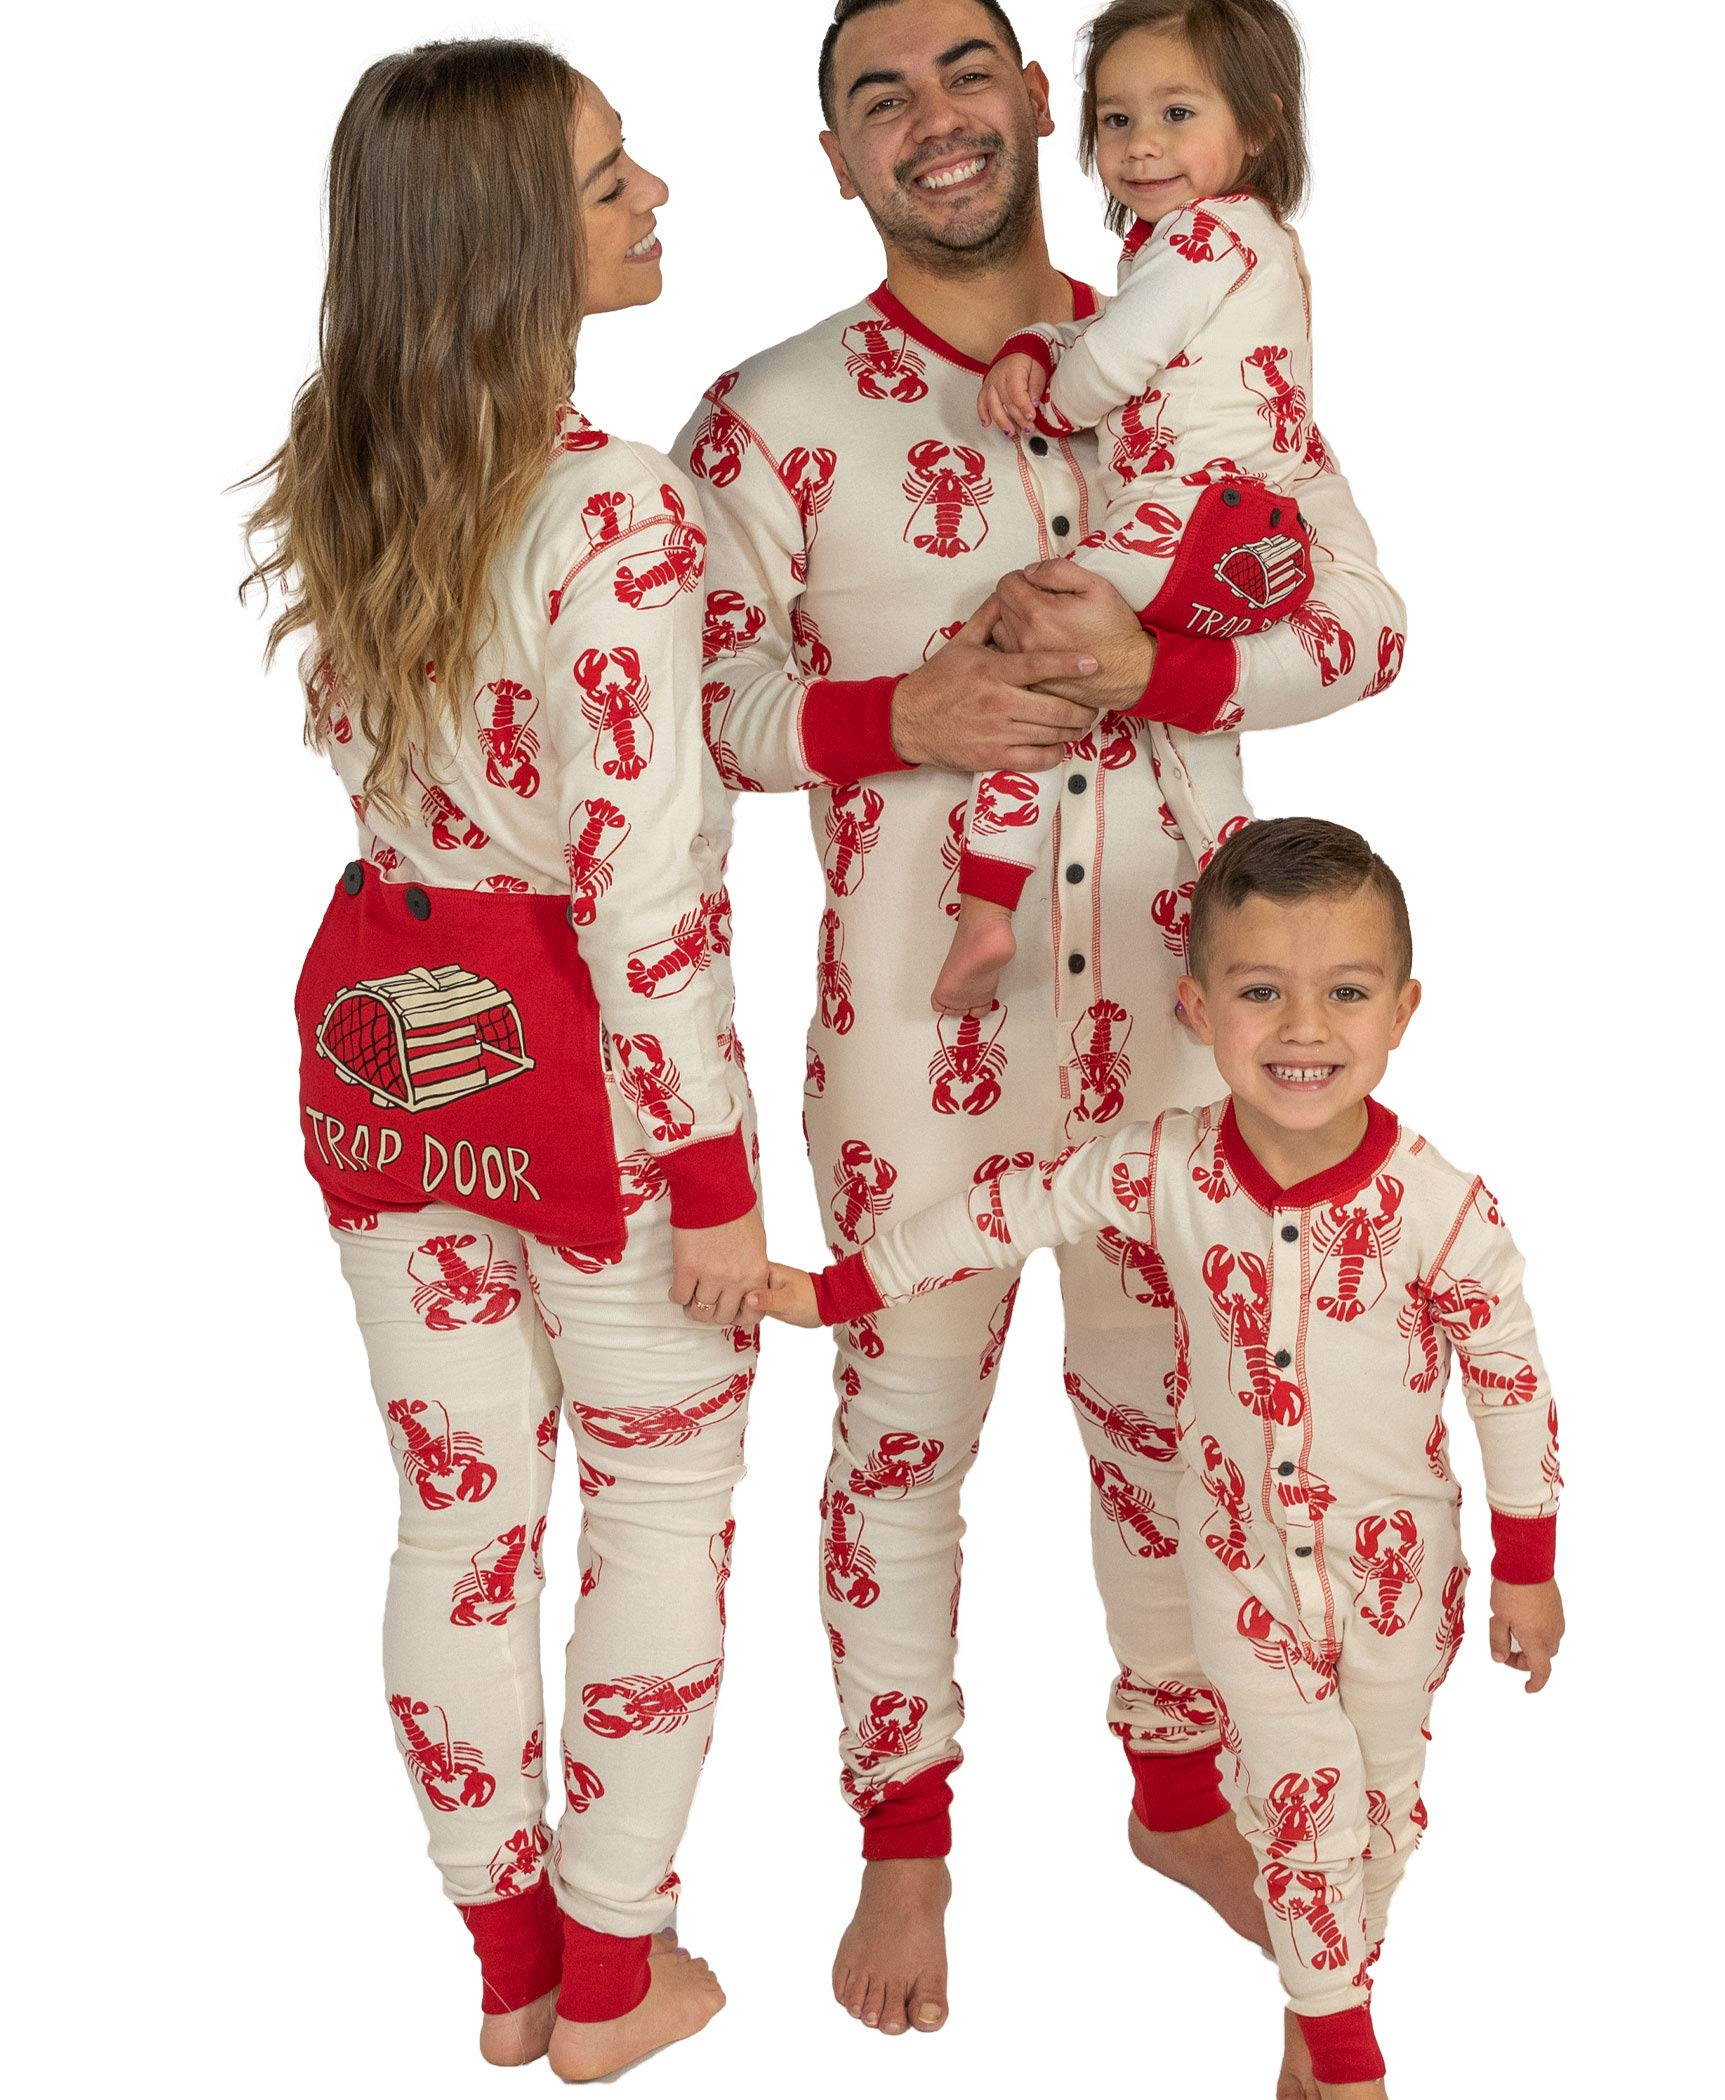 Teens Matching Pajamas for The Dog and Adults Lazy One Flapjacks Baby /& Kids